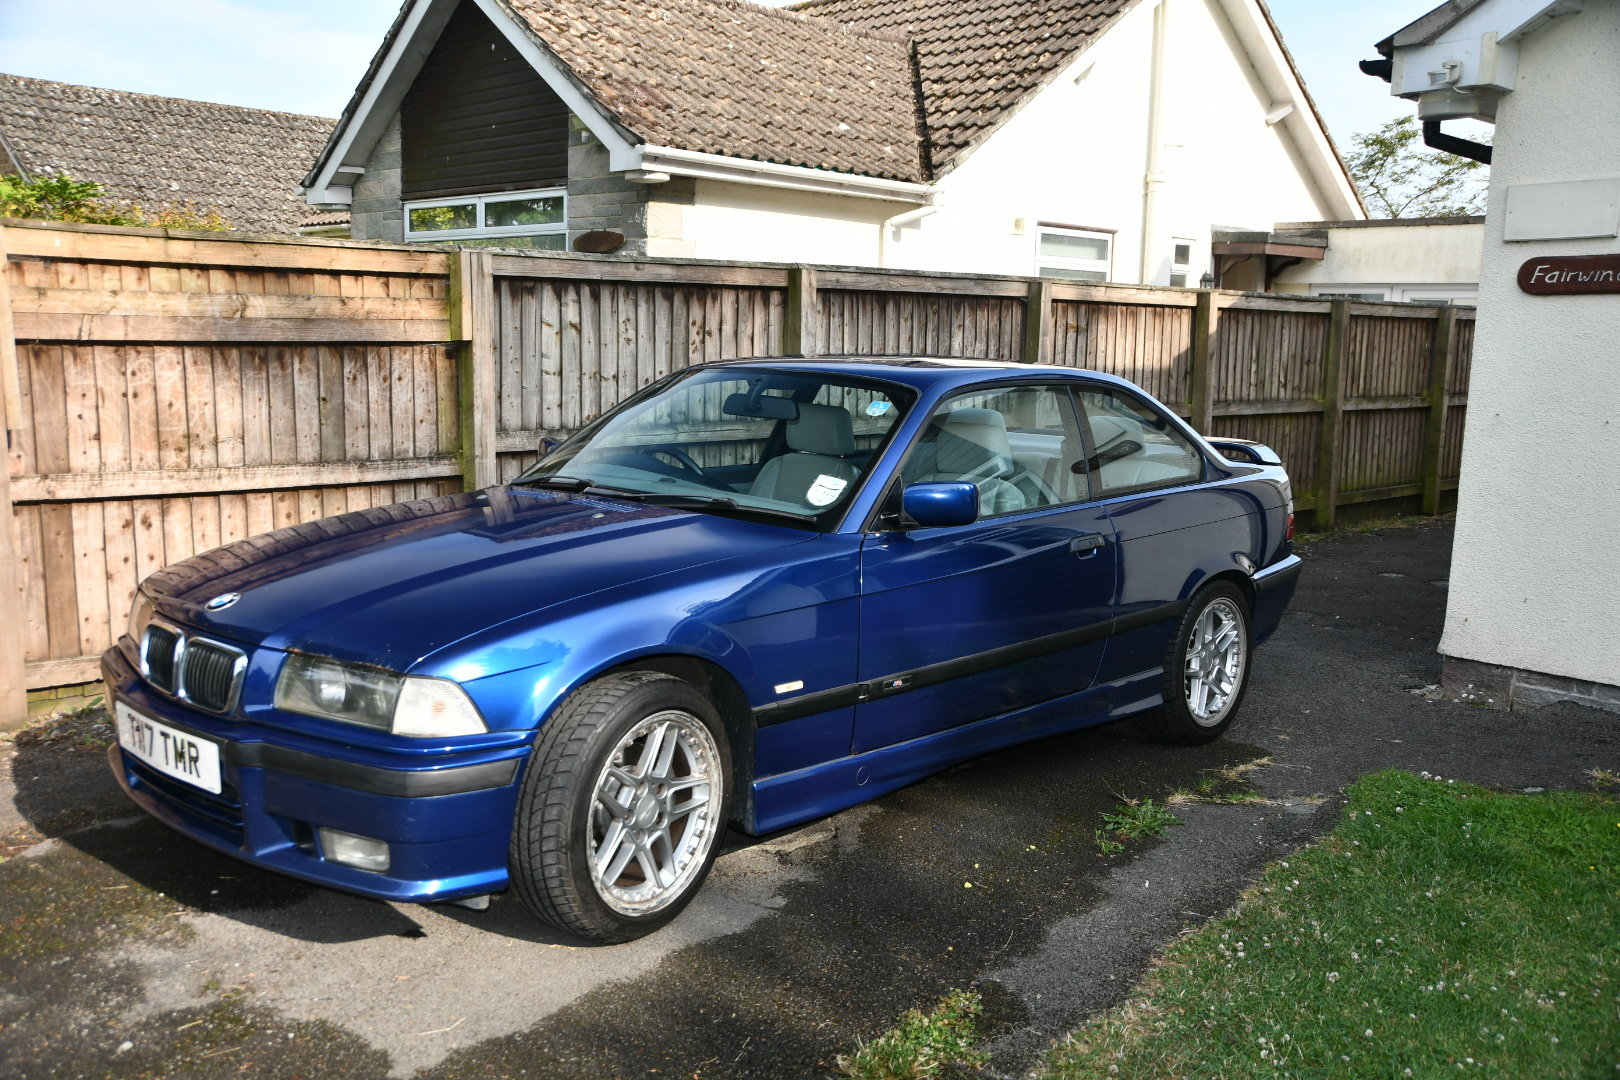 1999 Bmw 2.8i sport avus blue manual SOLD (picture 5 of 6)